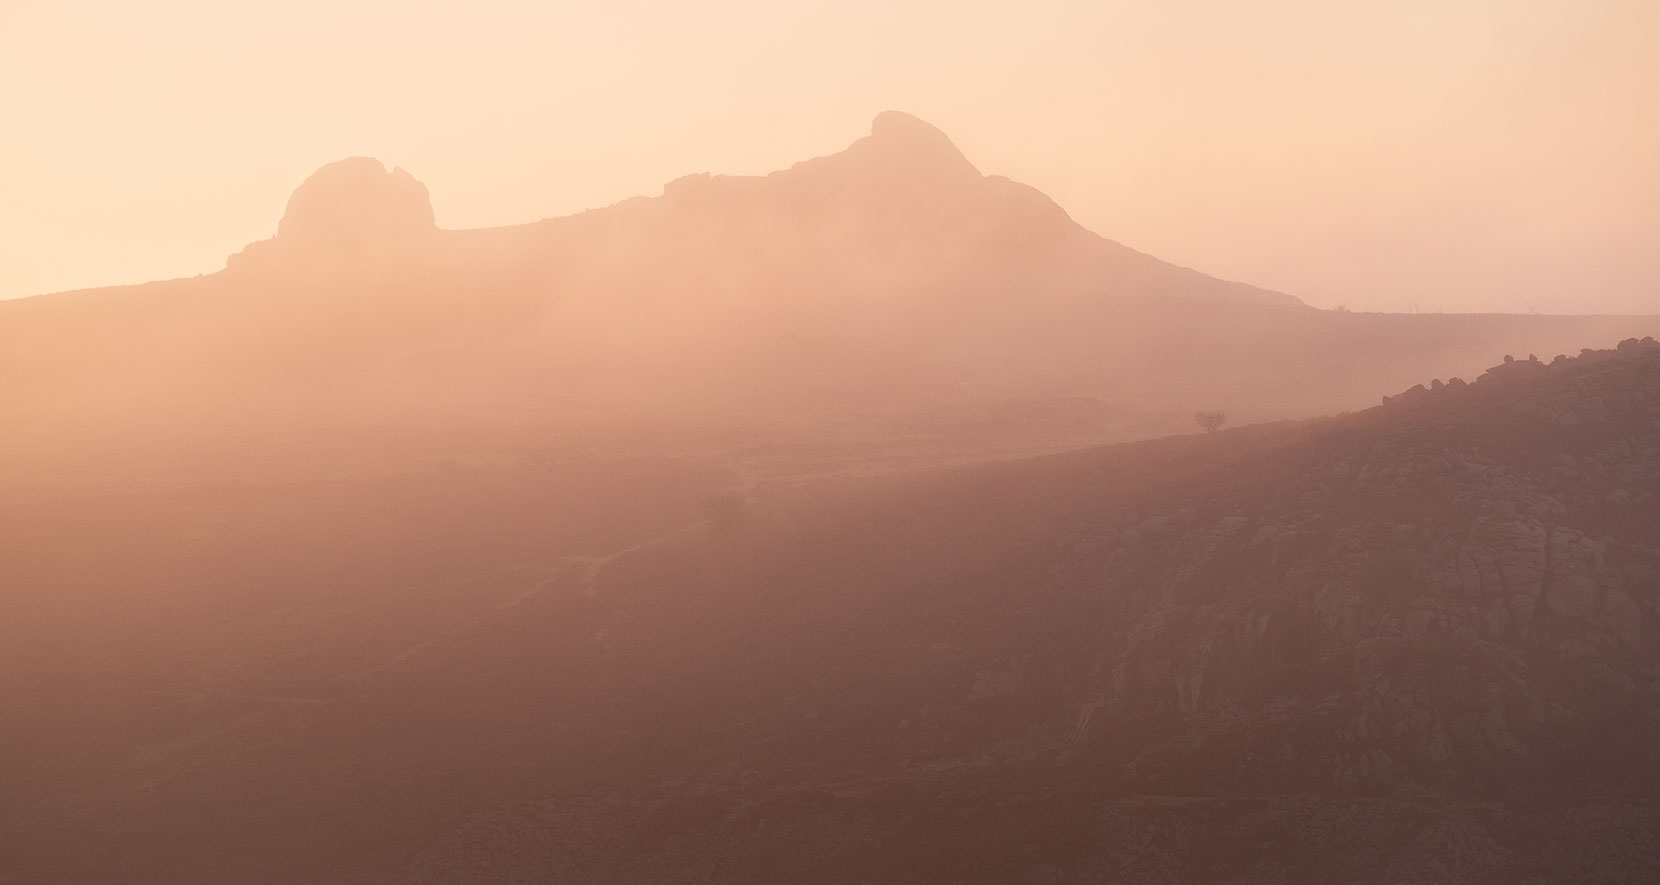 Haytor from afar - a long focal length and engaging 16:9 mode works well in the landscape